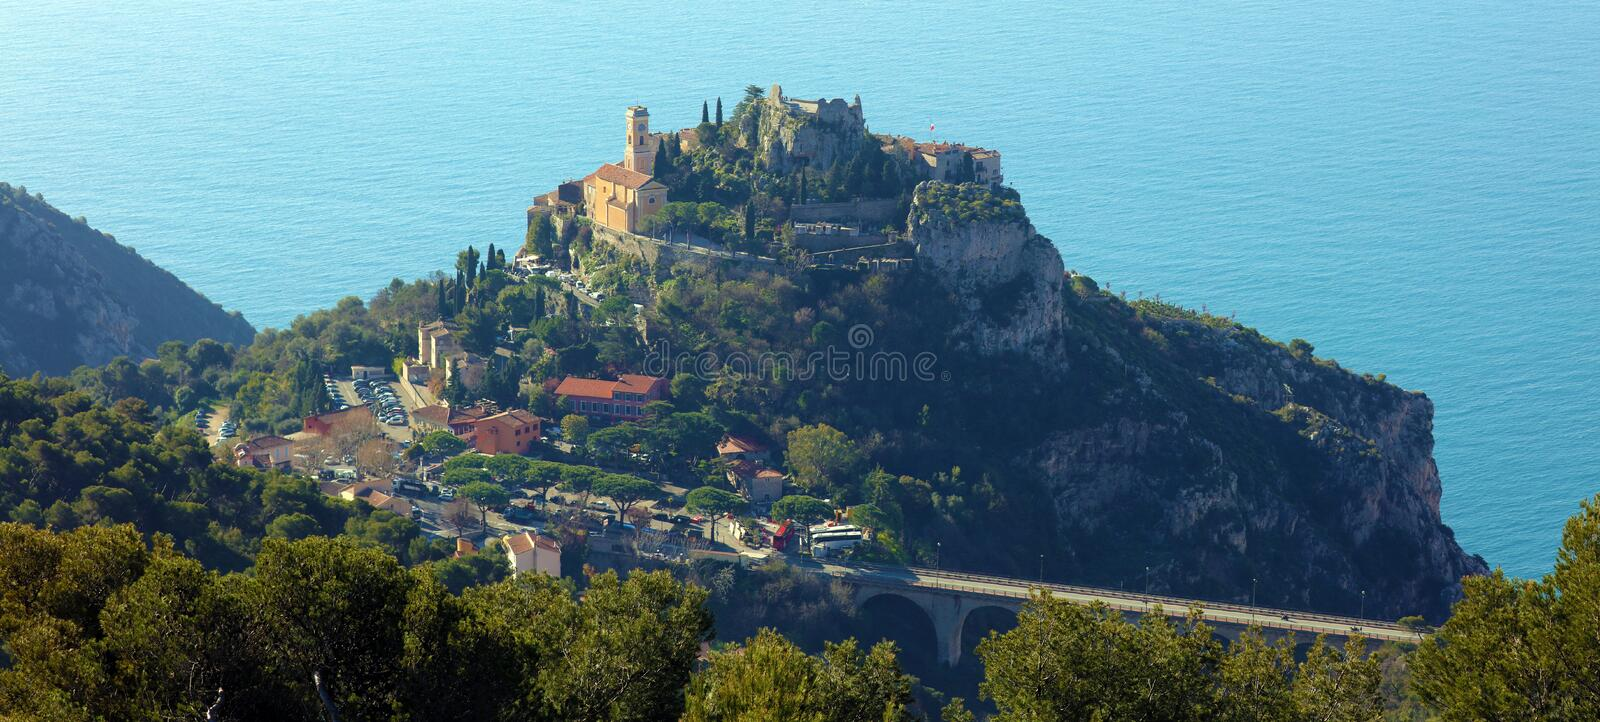 Eze village French riviera, Côte d`Azur, mediterranean coast, Eze, Saint-Tropez, Cannes and Monaco. Blue water and luxury yachts. French riviera, Côte d` royalty free stock images